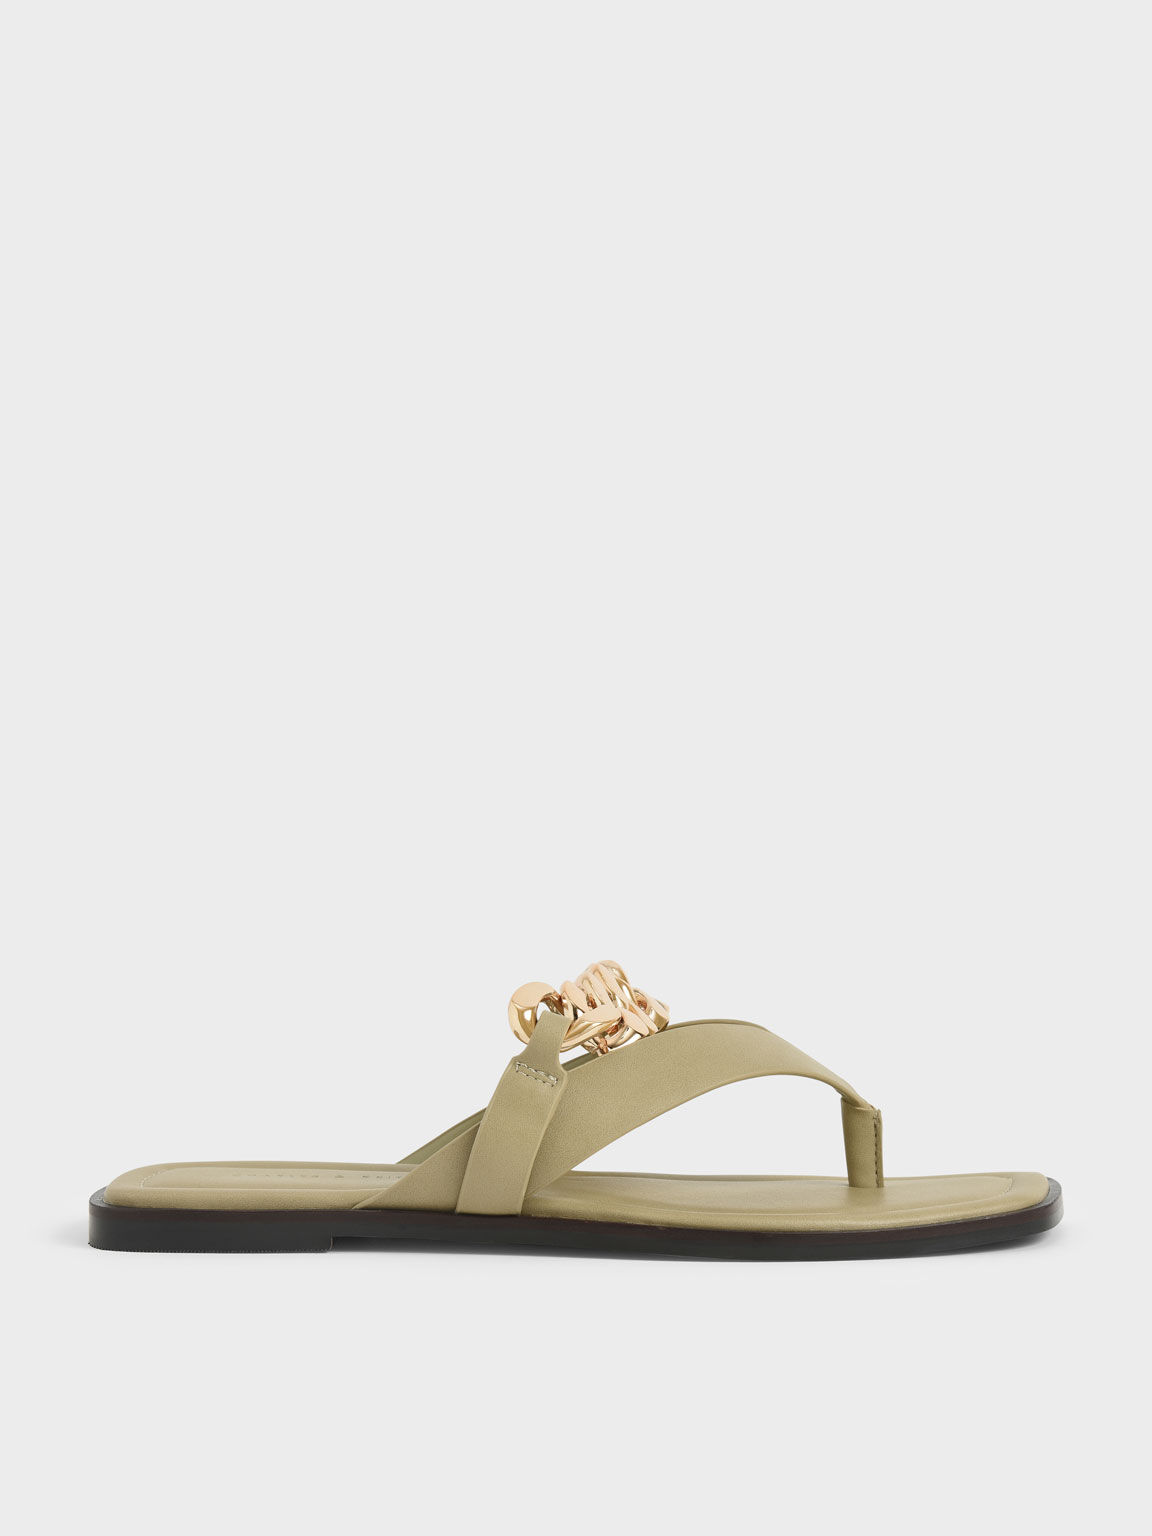 Chain Strap Thong Sandals, Taupe, hi-res